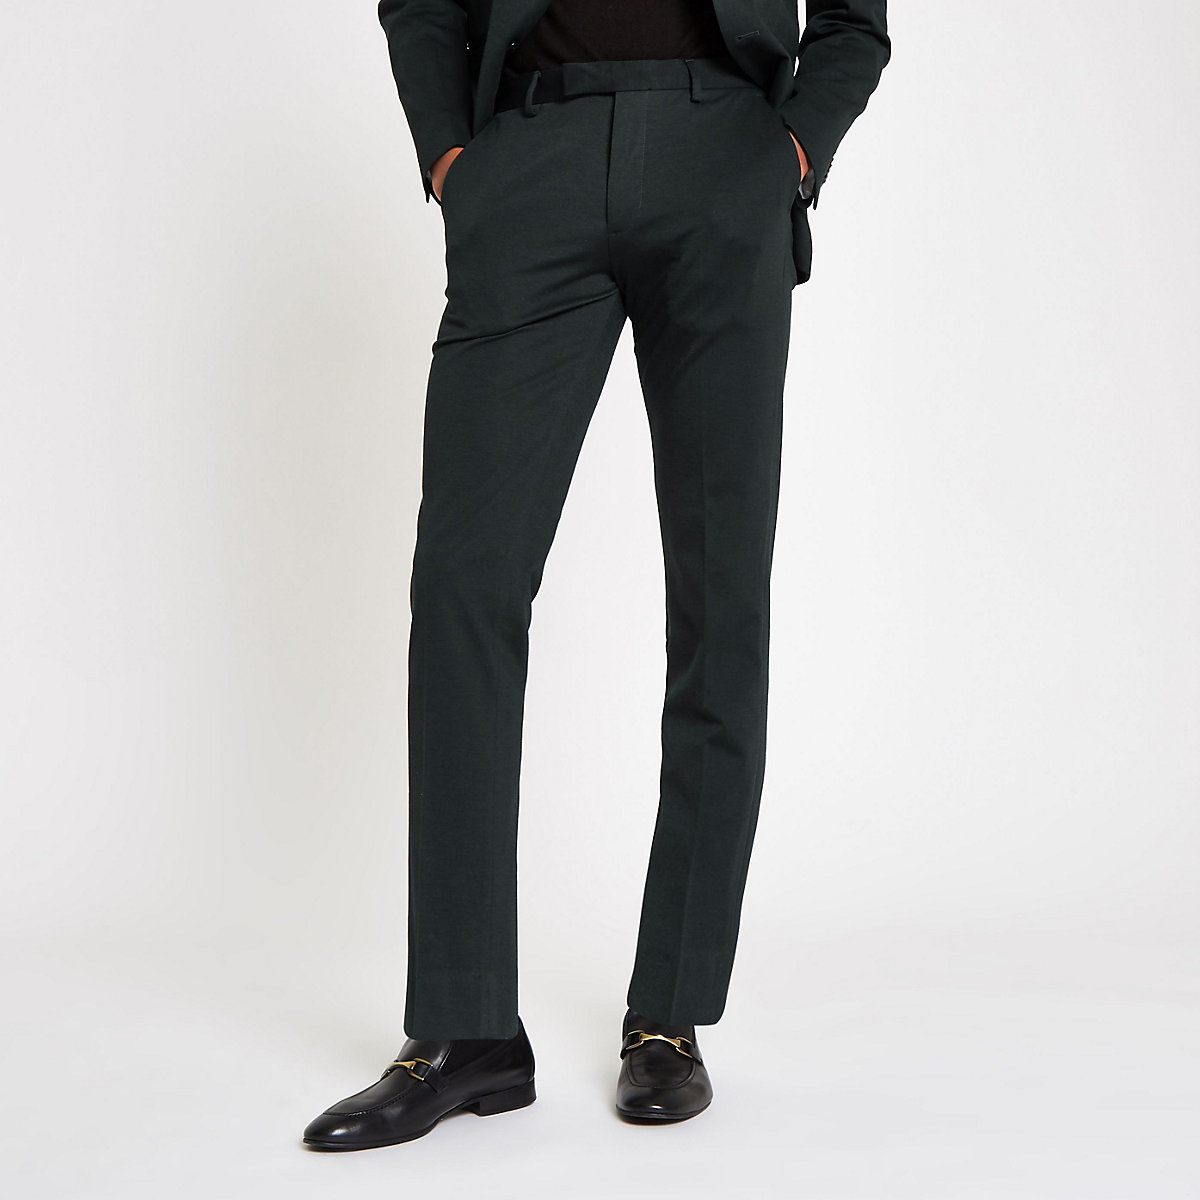 Jack & Jones Premium green suit trousers